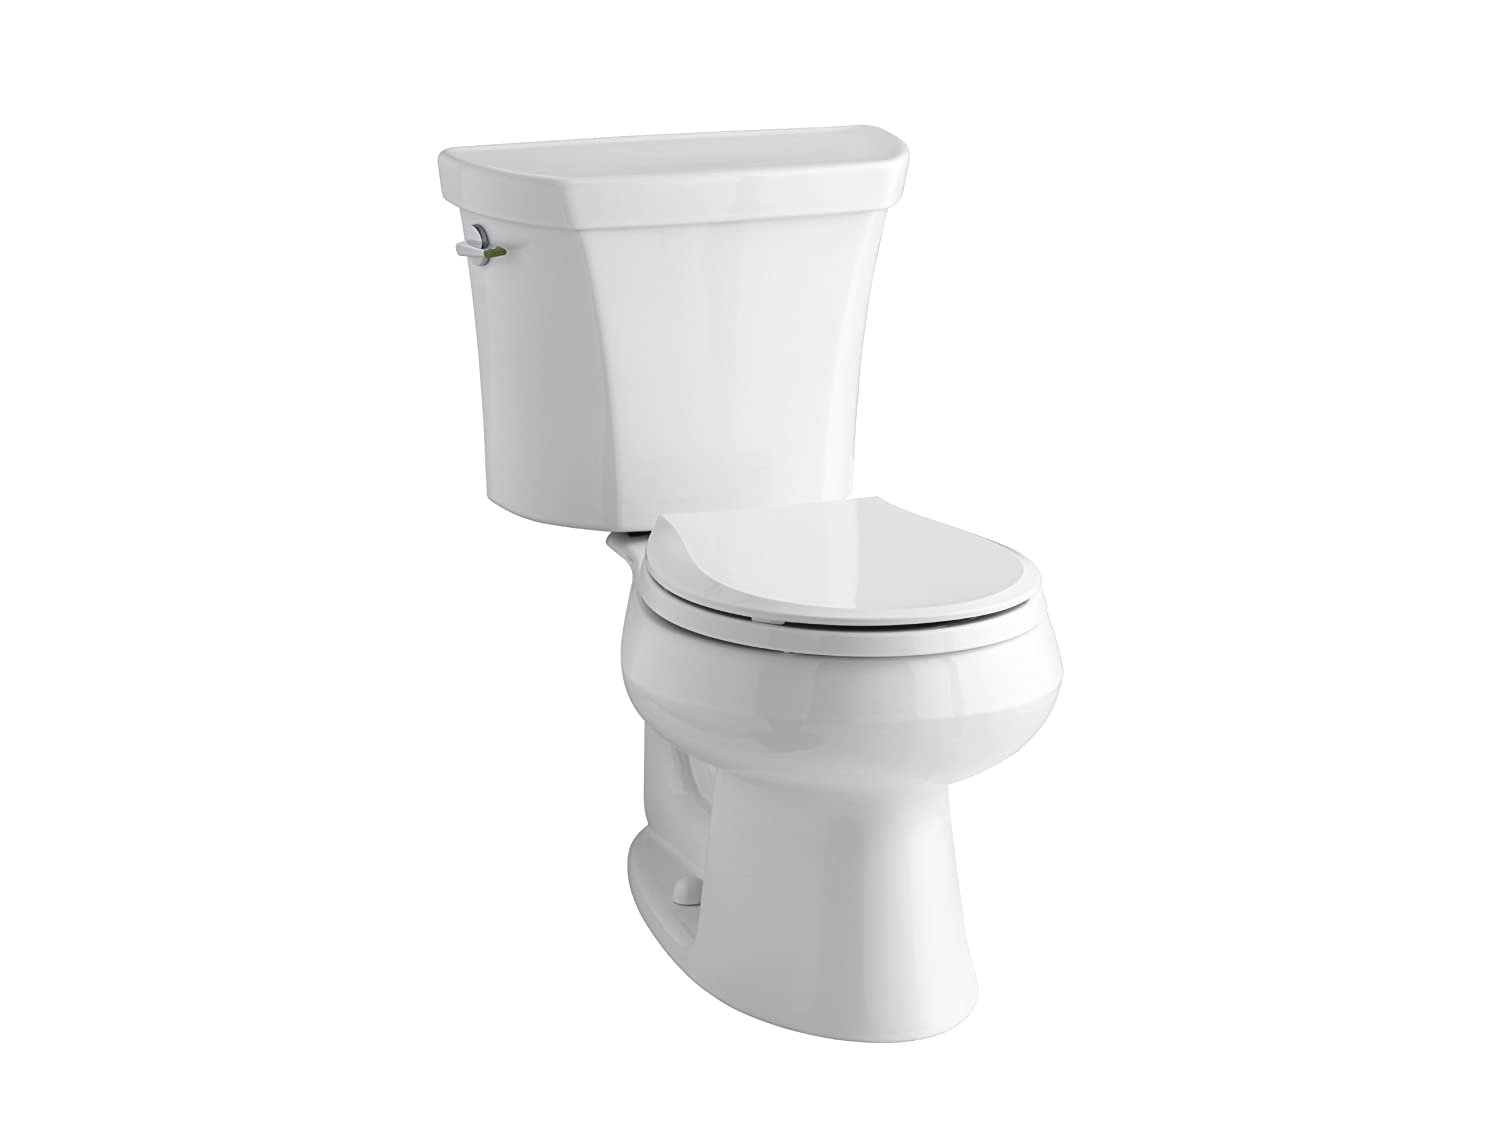 KOHLER K-3987-0 Wellworth Two-Piece Round-Front Dual-Flush Toilet with Class Five Flush System and Left-Hand Trip Lever